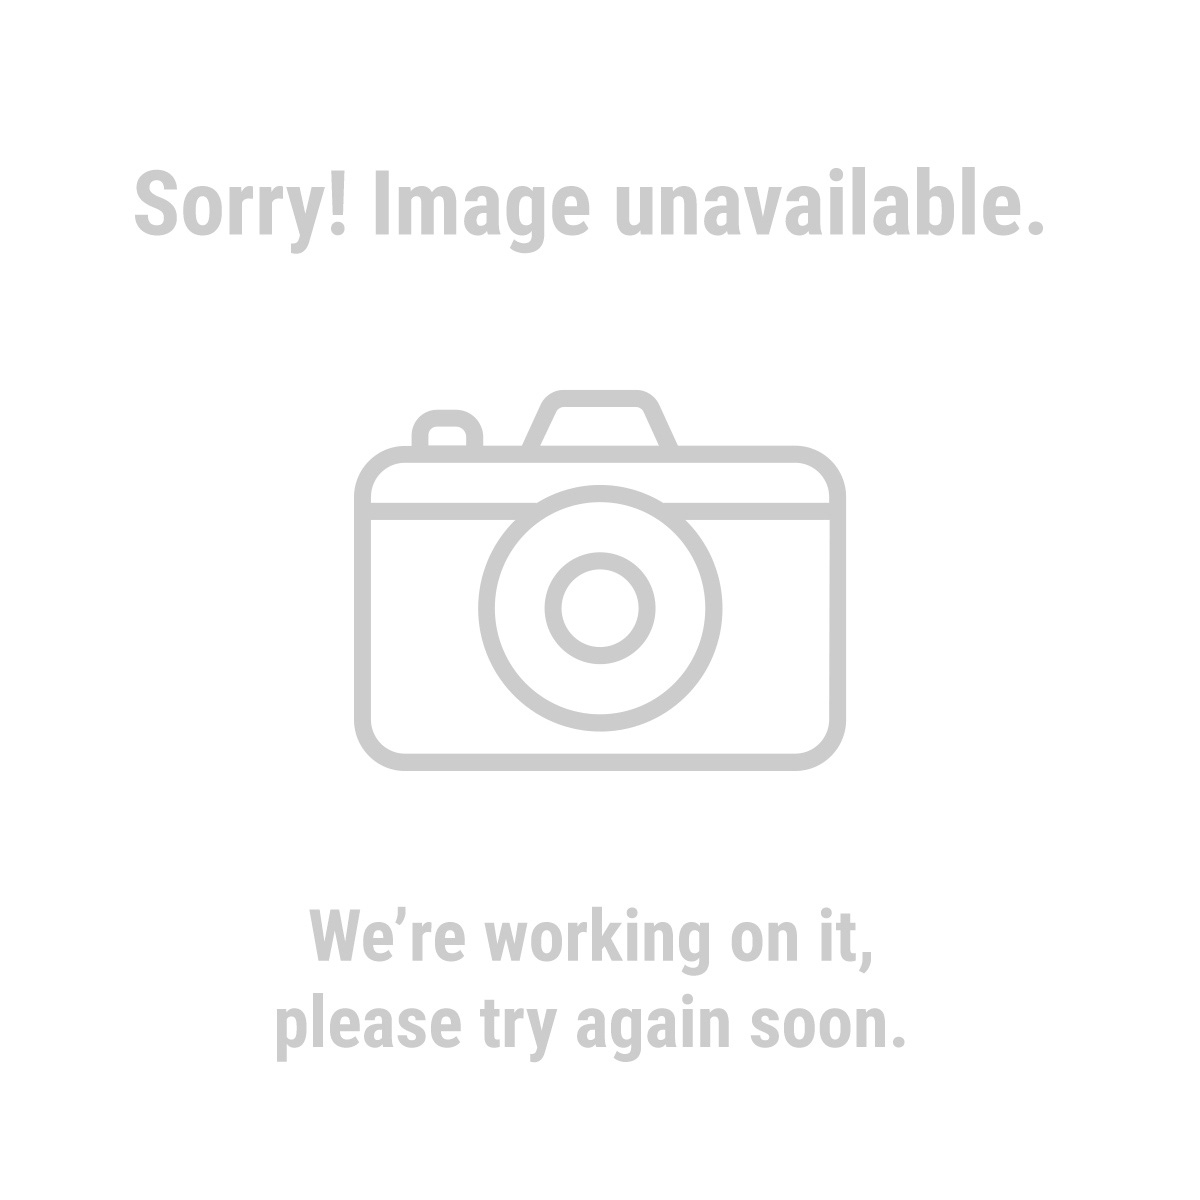 63007 36 in. x 12-1/2 in. x 13 in. Large Animal Trap